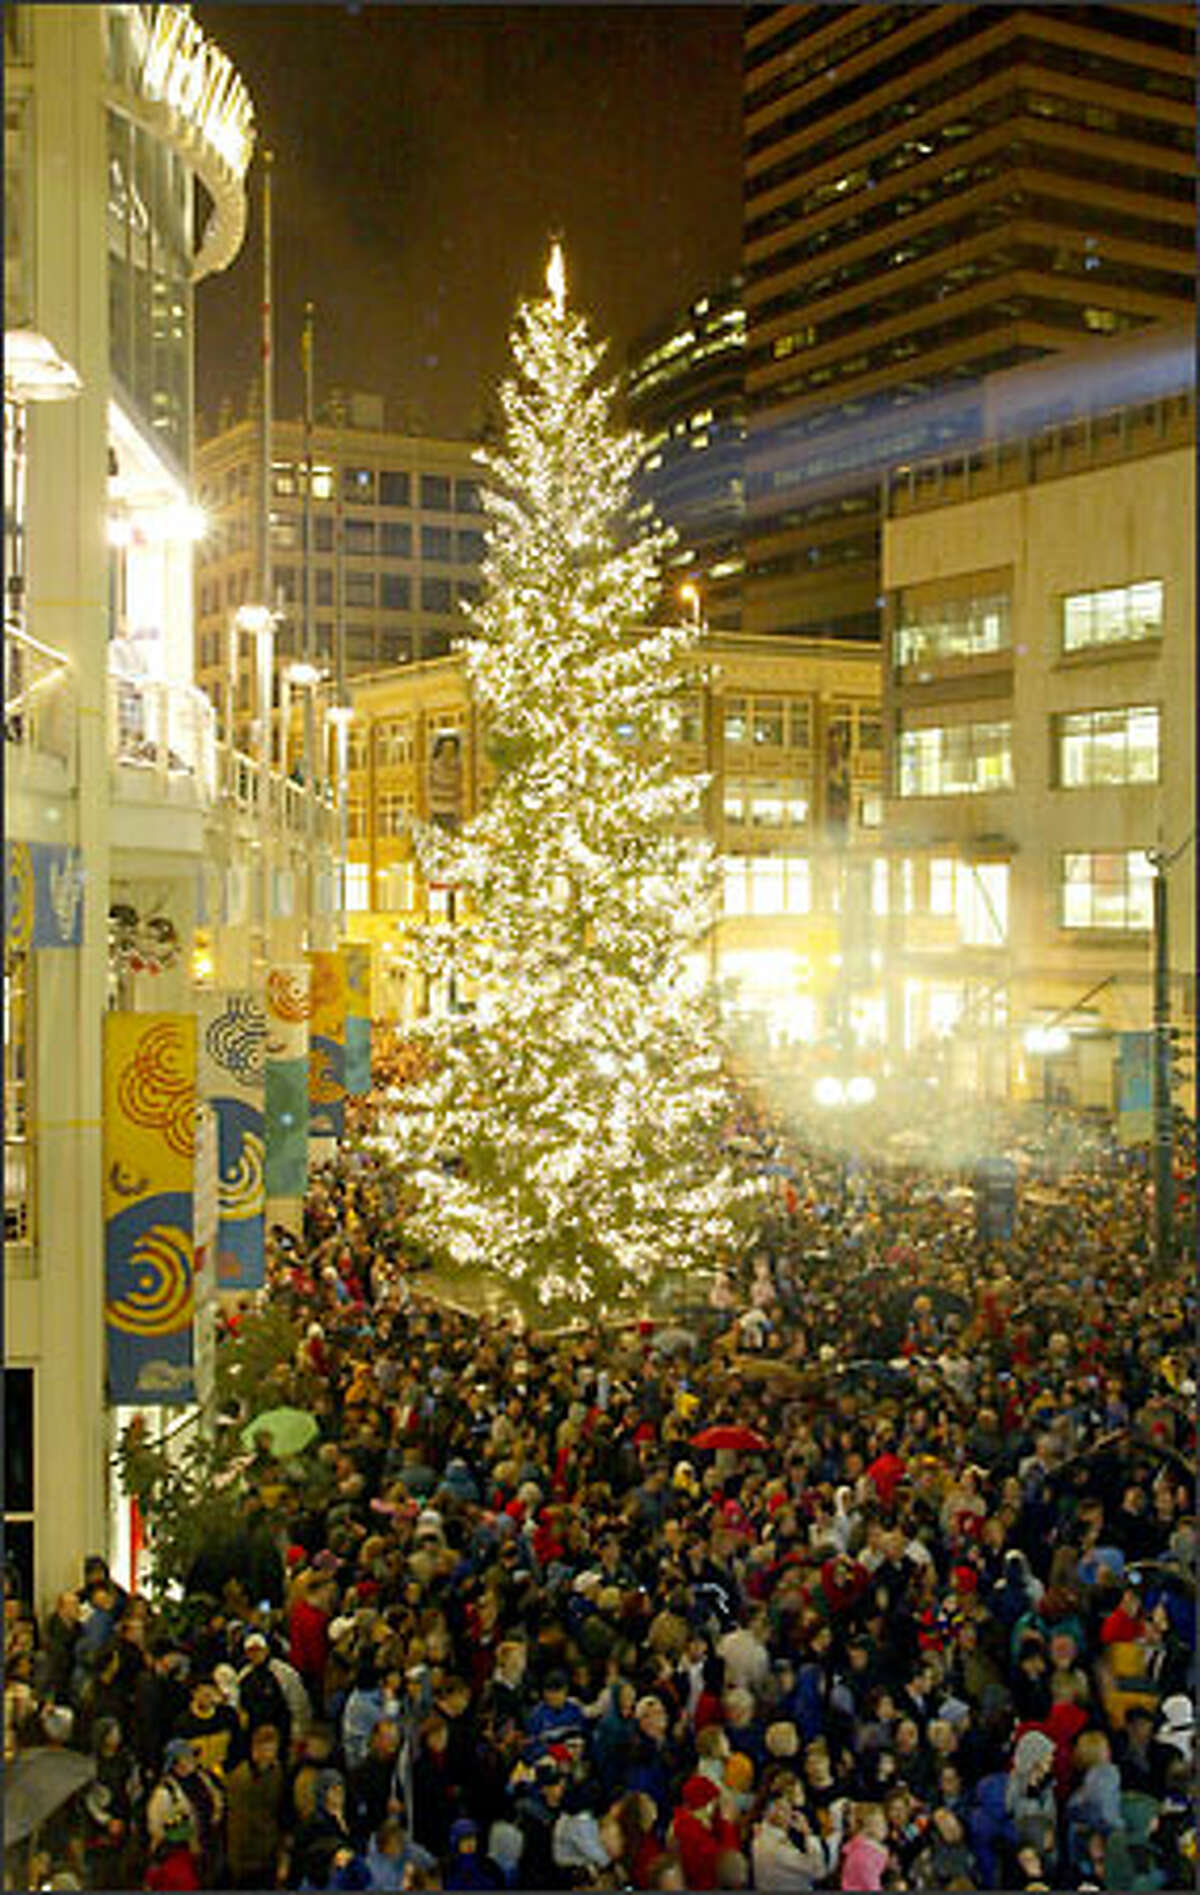 Wind and rain lash the crowd, but a 60-foot Douglas fir is still the star of the show during the Westlake Center's 15th annual Christmas tree lighting last night. This year's tree came from the Olympic Peninsula and was decorated with 25,000 lights. It was one of the delights that drew shoppers to downtown Seattle yesterday.